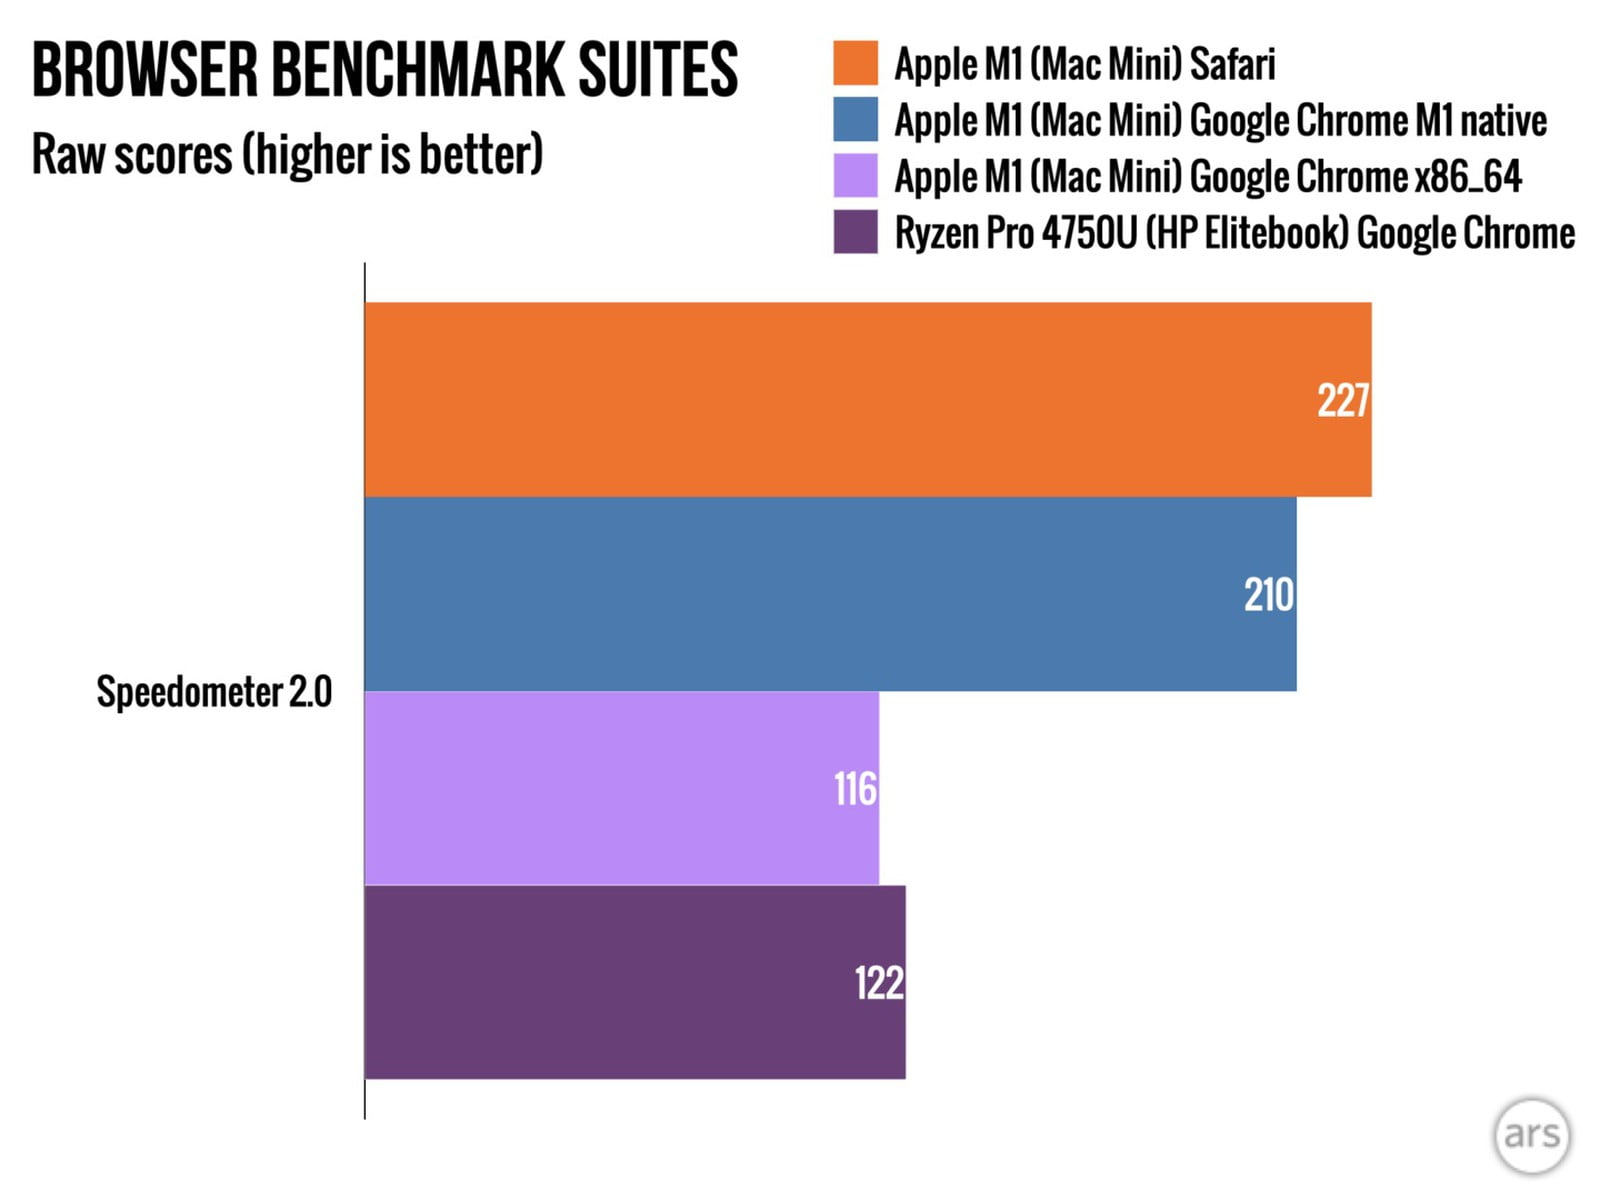 Google Chrome, the native Mac version with M1 SoC up to 80% faster than the non-native version